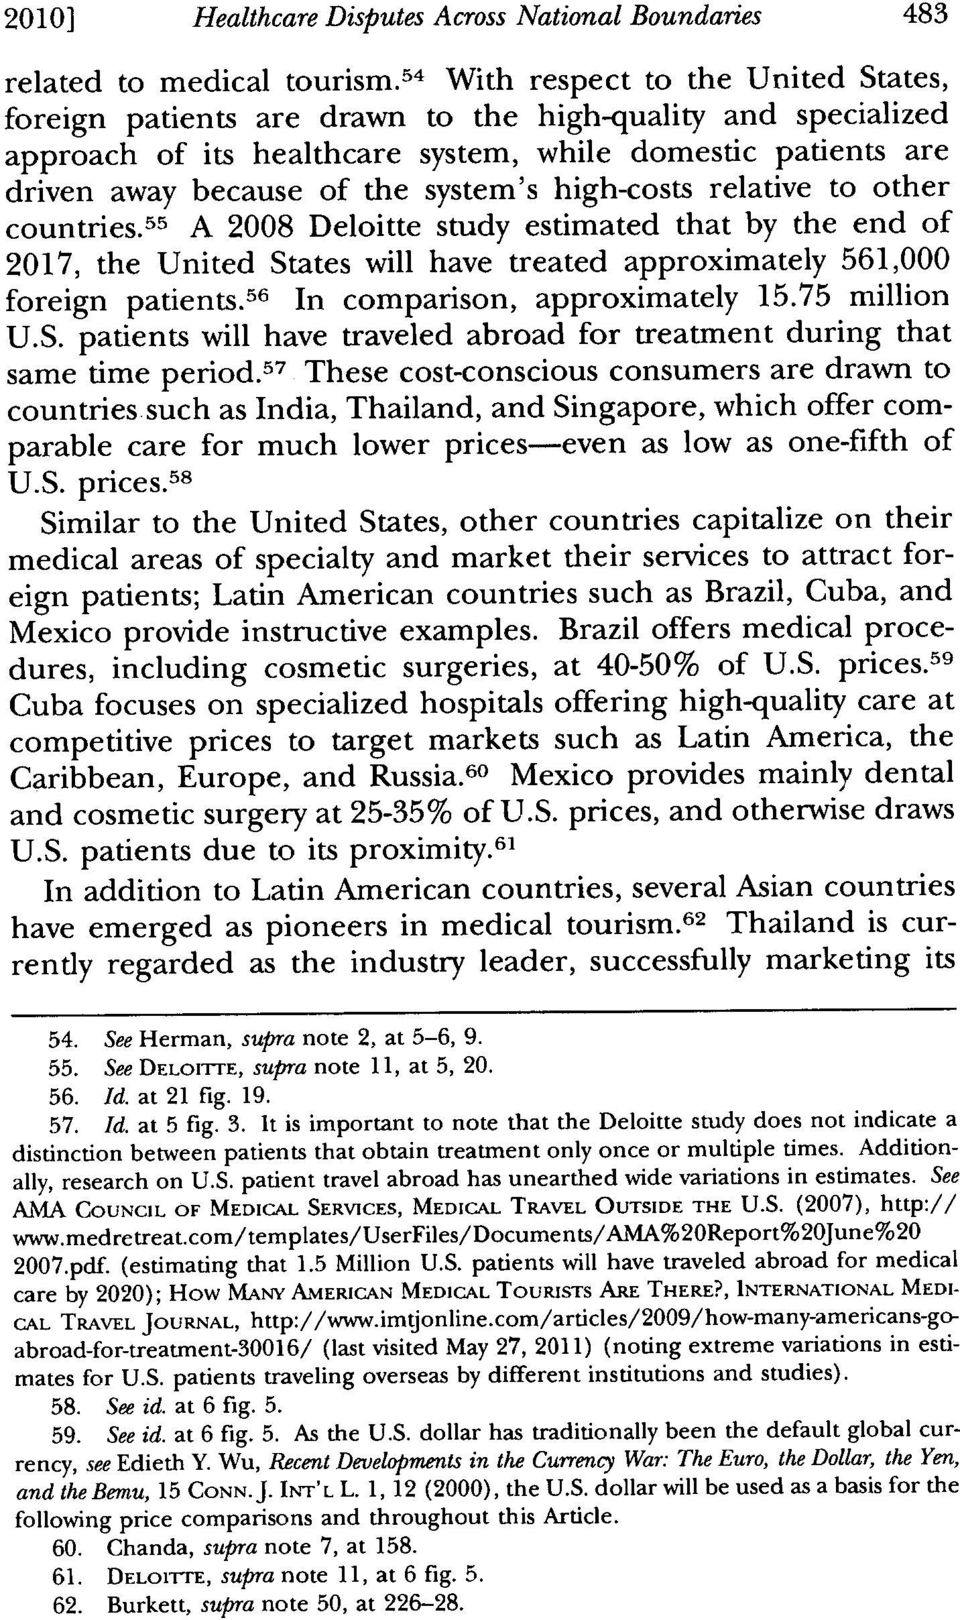 high-costs relative to other countries. 55 A 2008 Deloitte study estimated that by the end of 2017, the United States will have treated approximately 561,000 foreign patients.